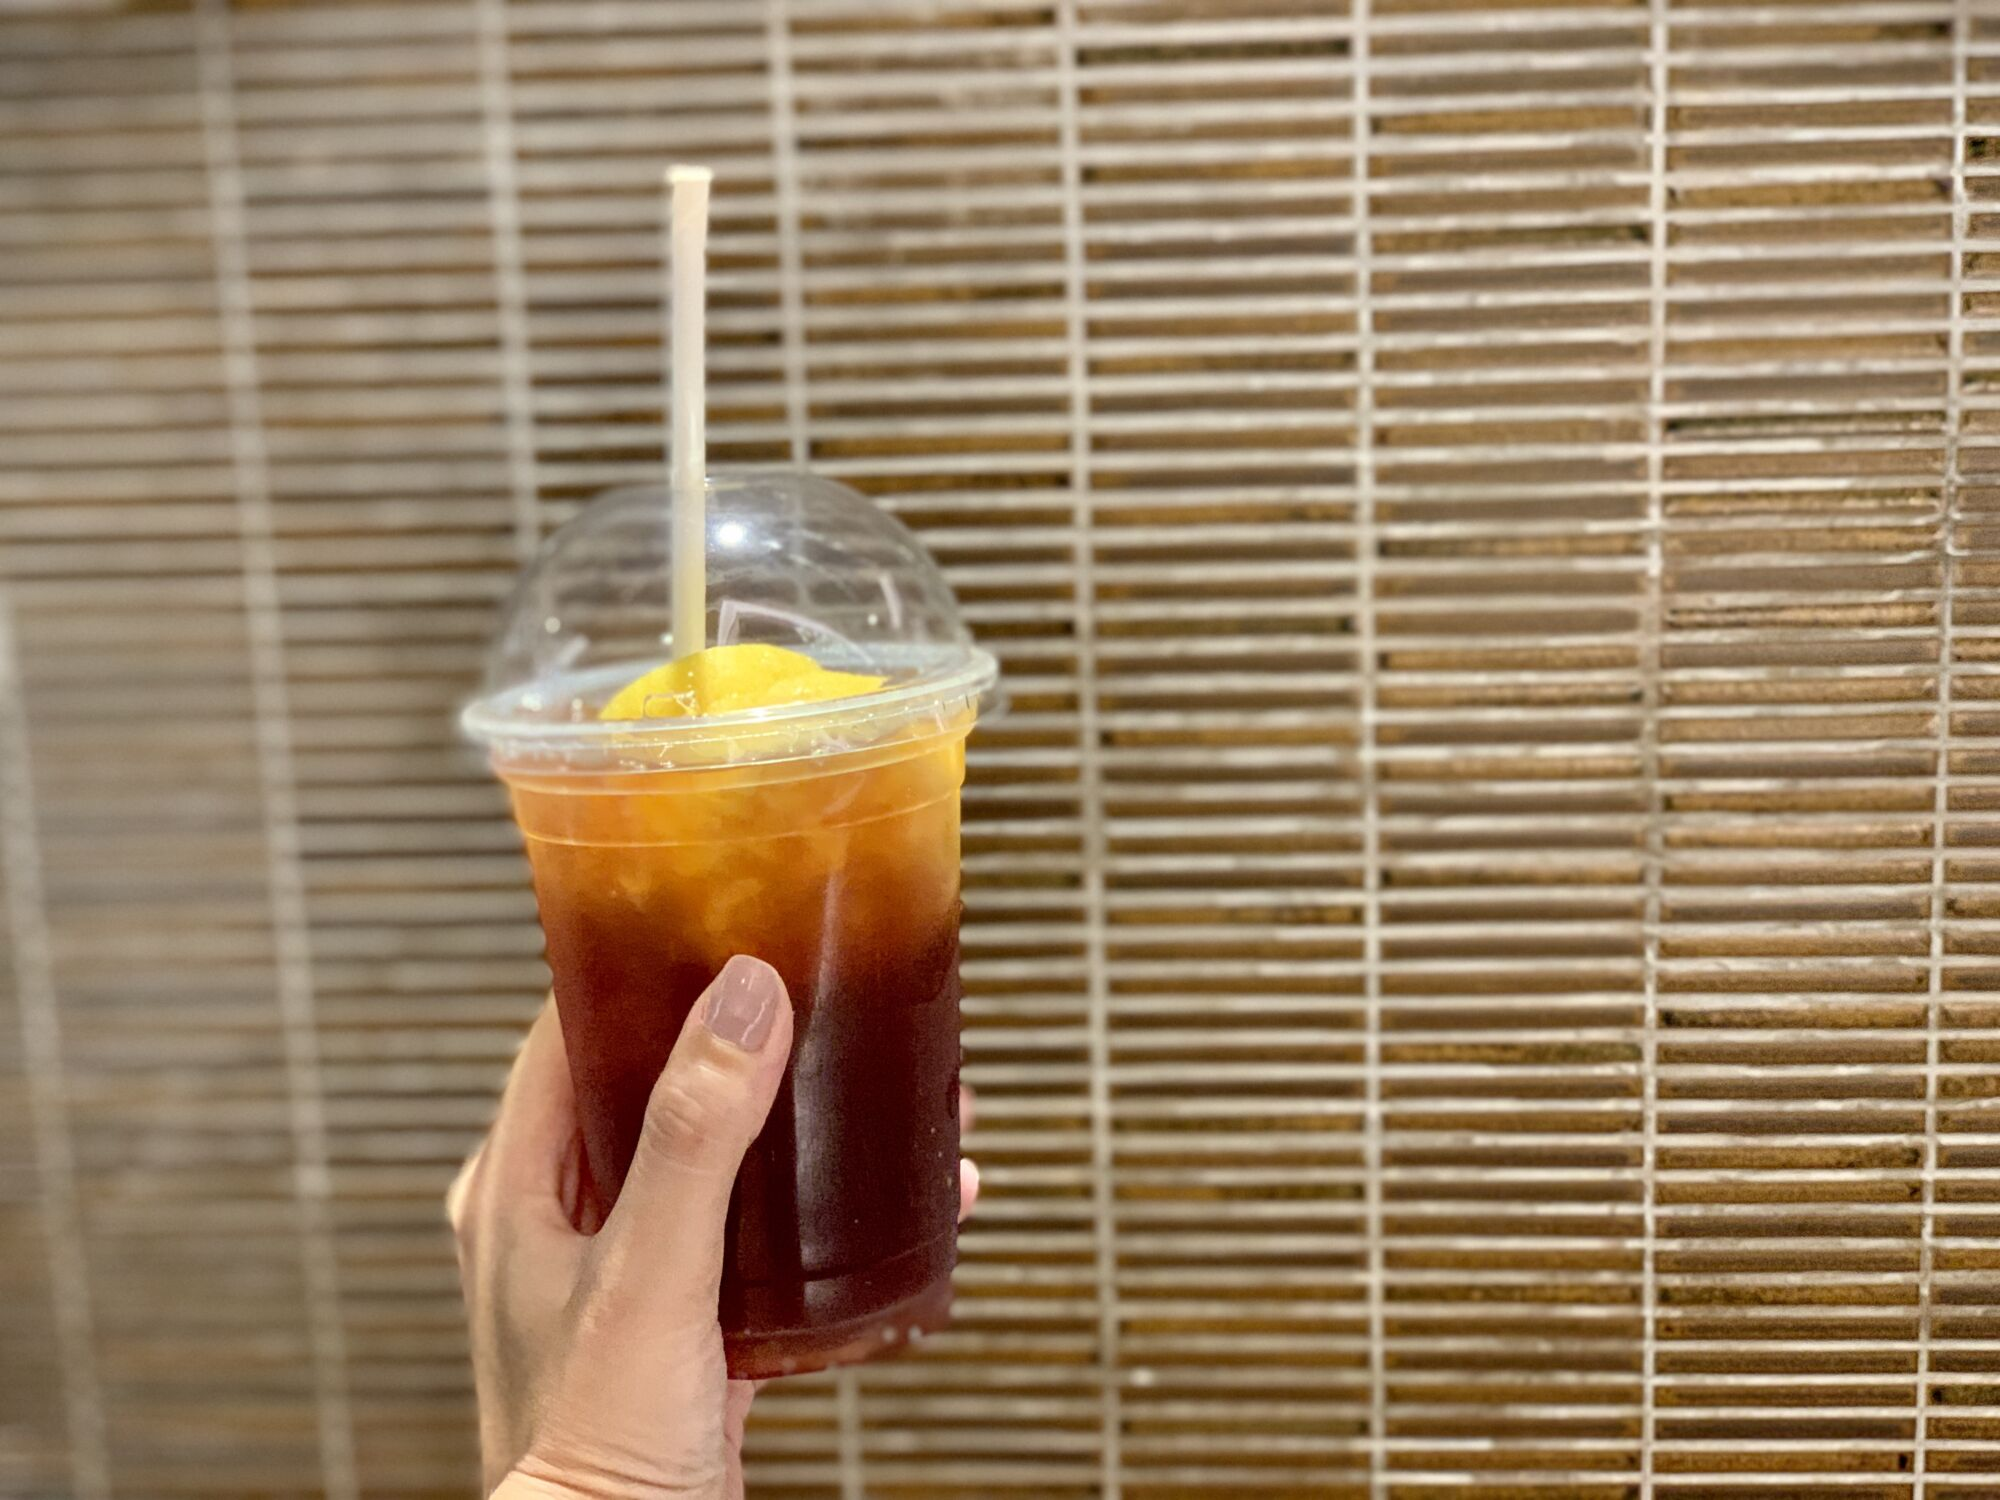 Must-try Macau drinks-New Yaohan Food Court Iced Lemon Tea Macau Lifestyle